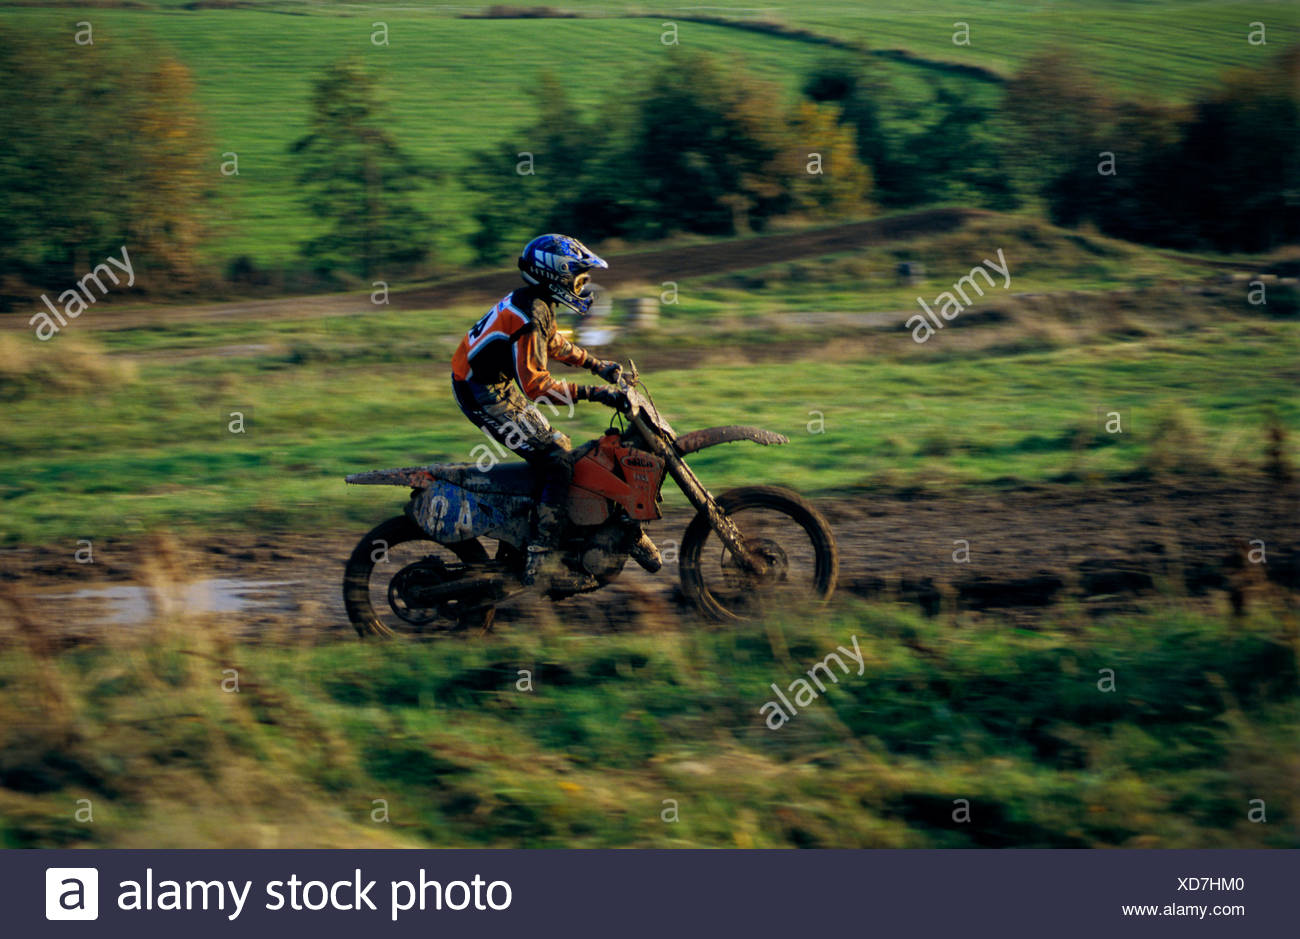 Motocross driver on an off-road ride - Stock Image